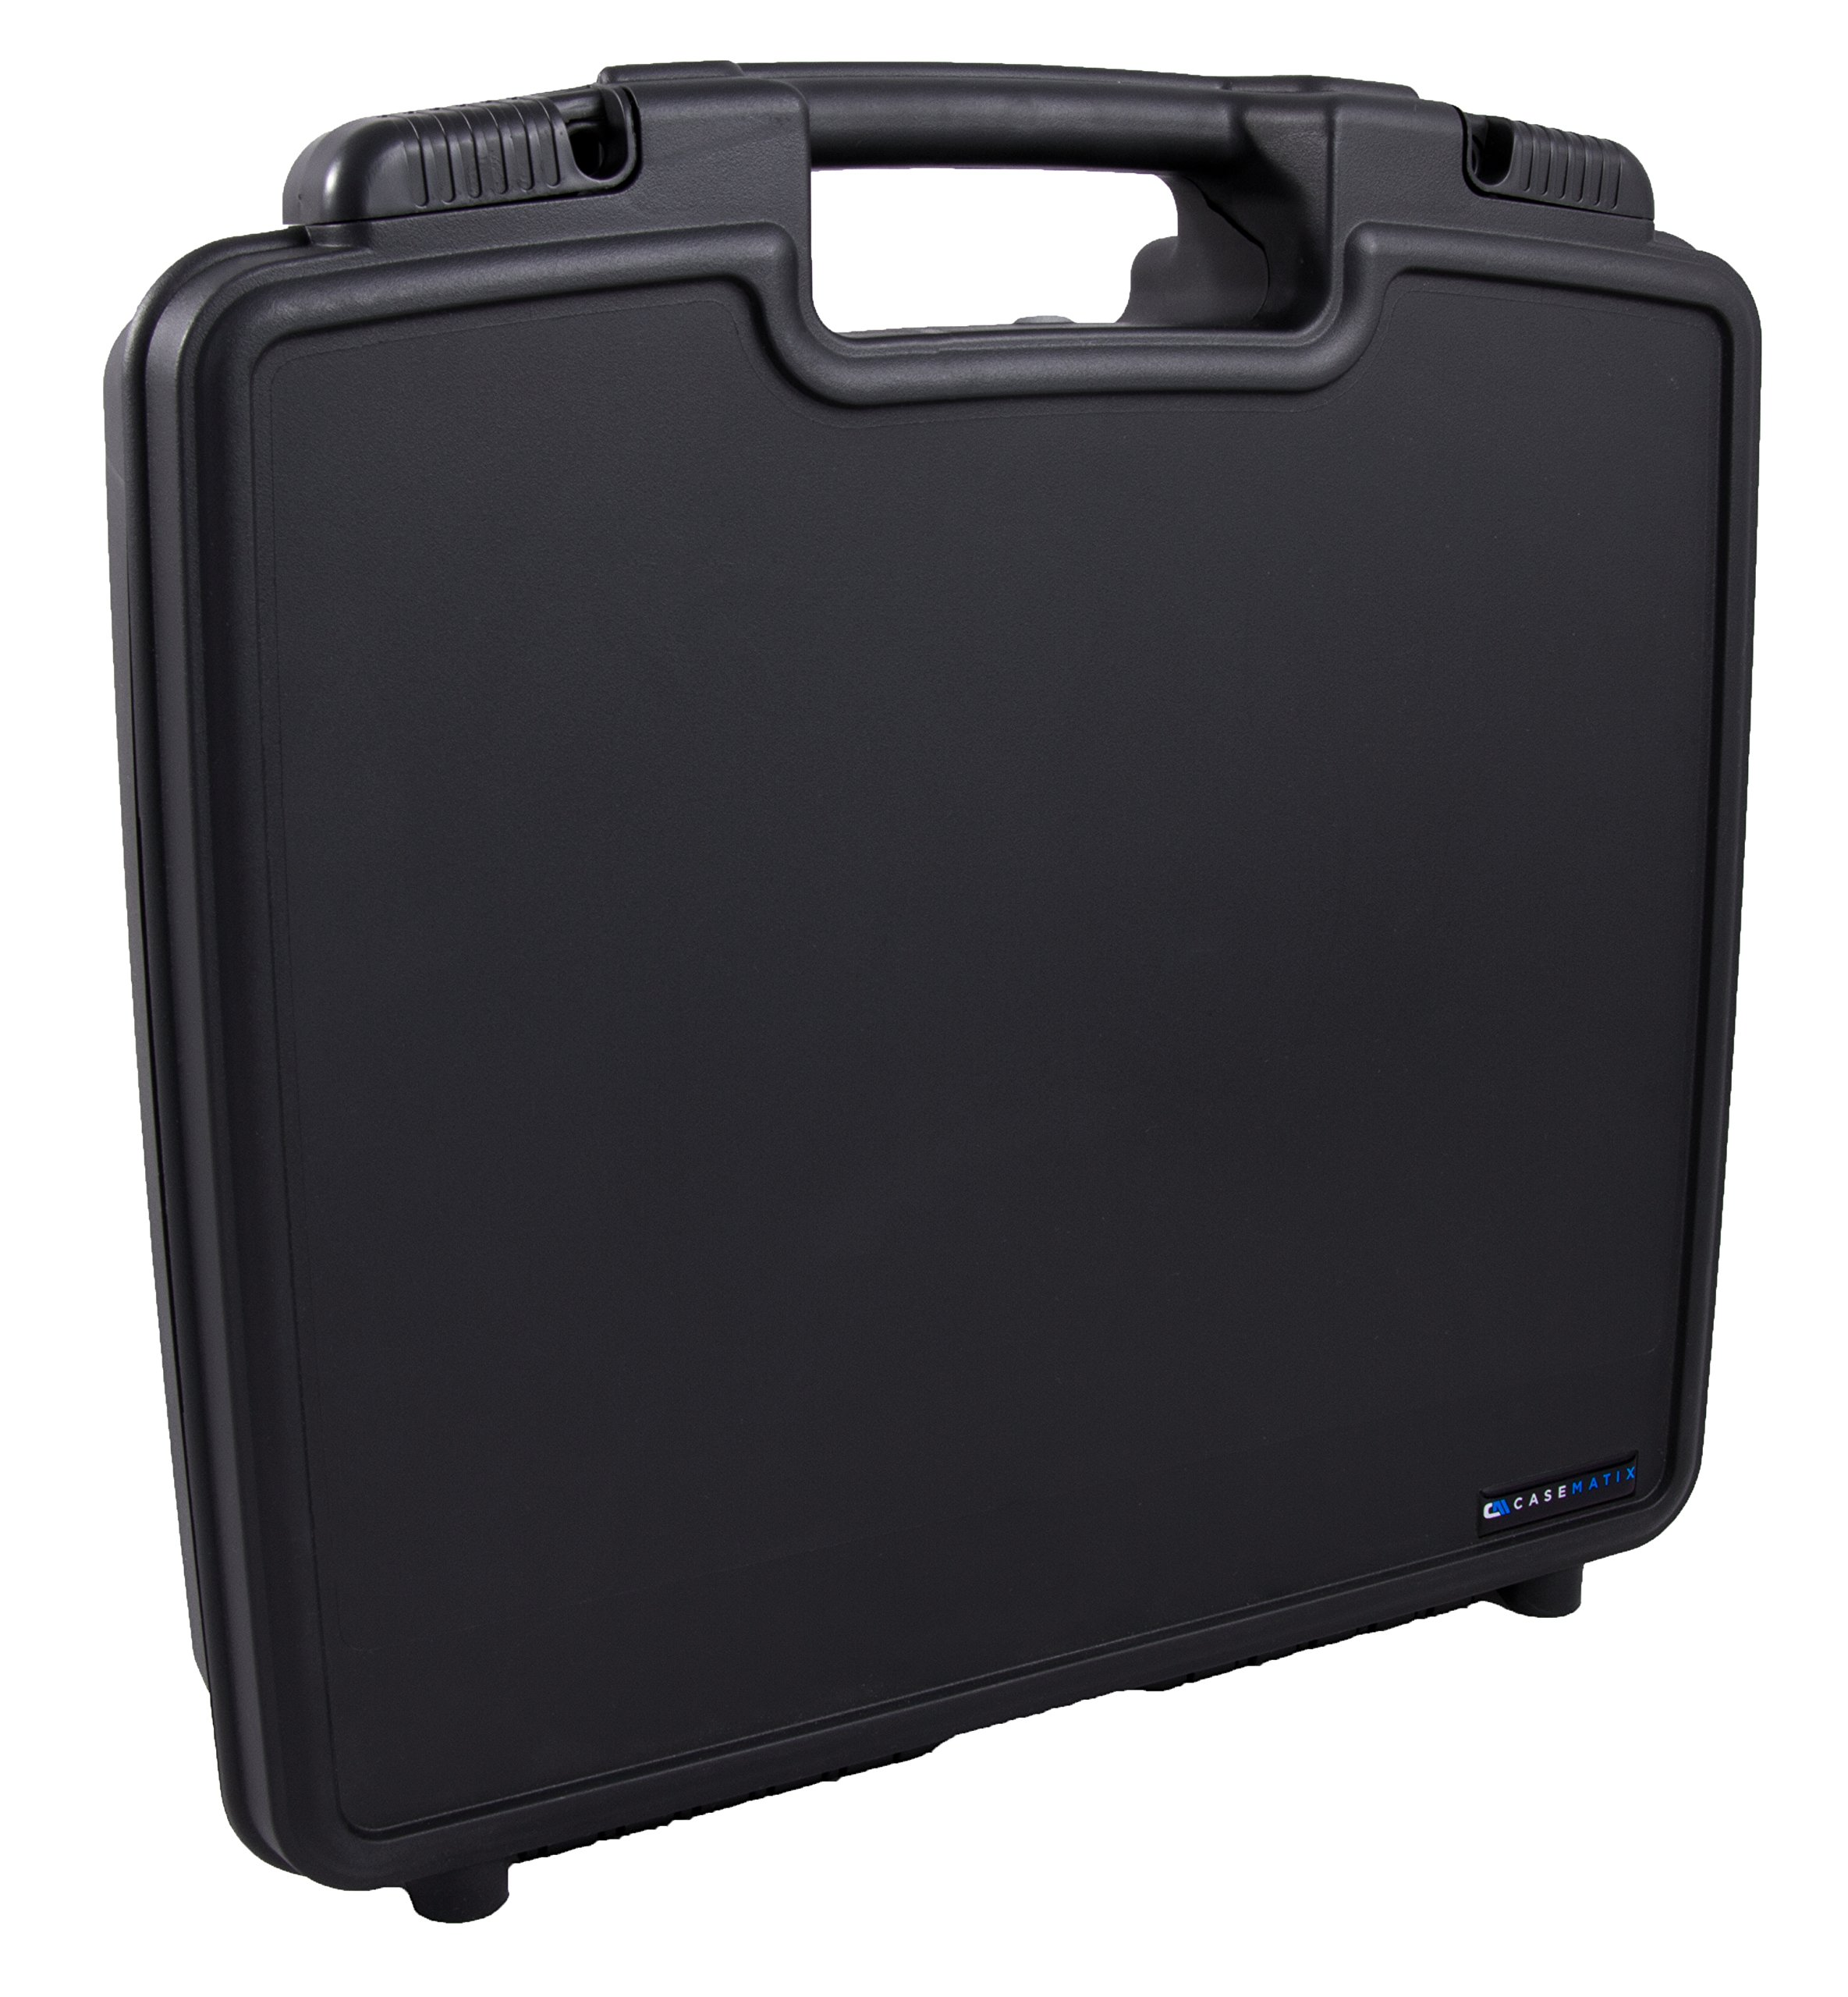 CASEMATIX Protective Hard Travel Case Fits Native Instruments Maschine Mikro Mk3 Drum Controller - Impact Protection, Dense Padded Foam by CASEMATIX (Image #3)